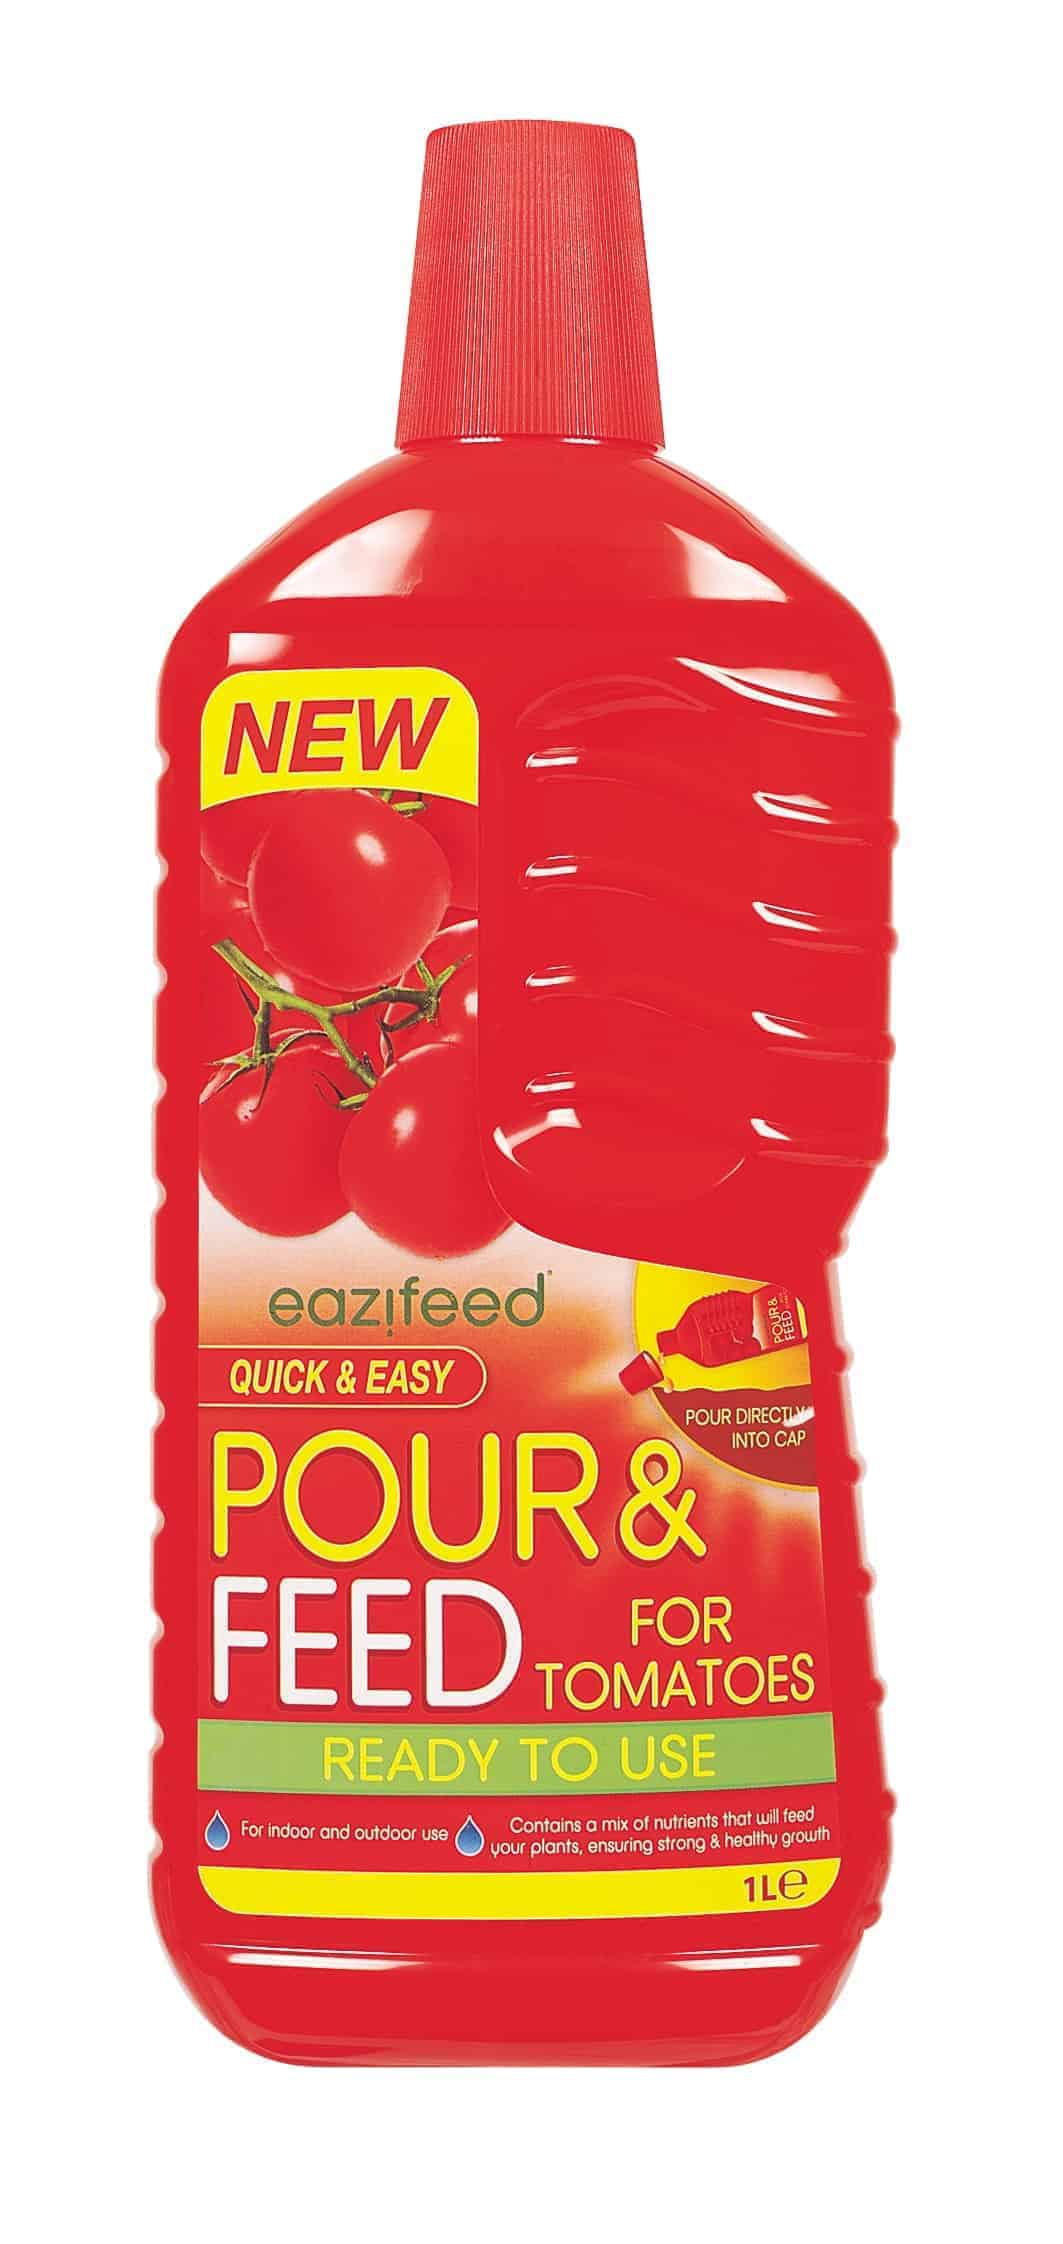 EaziFeed 1ltr Tomato Pour and Feed